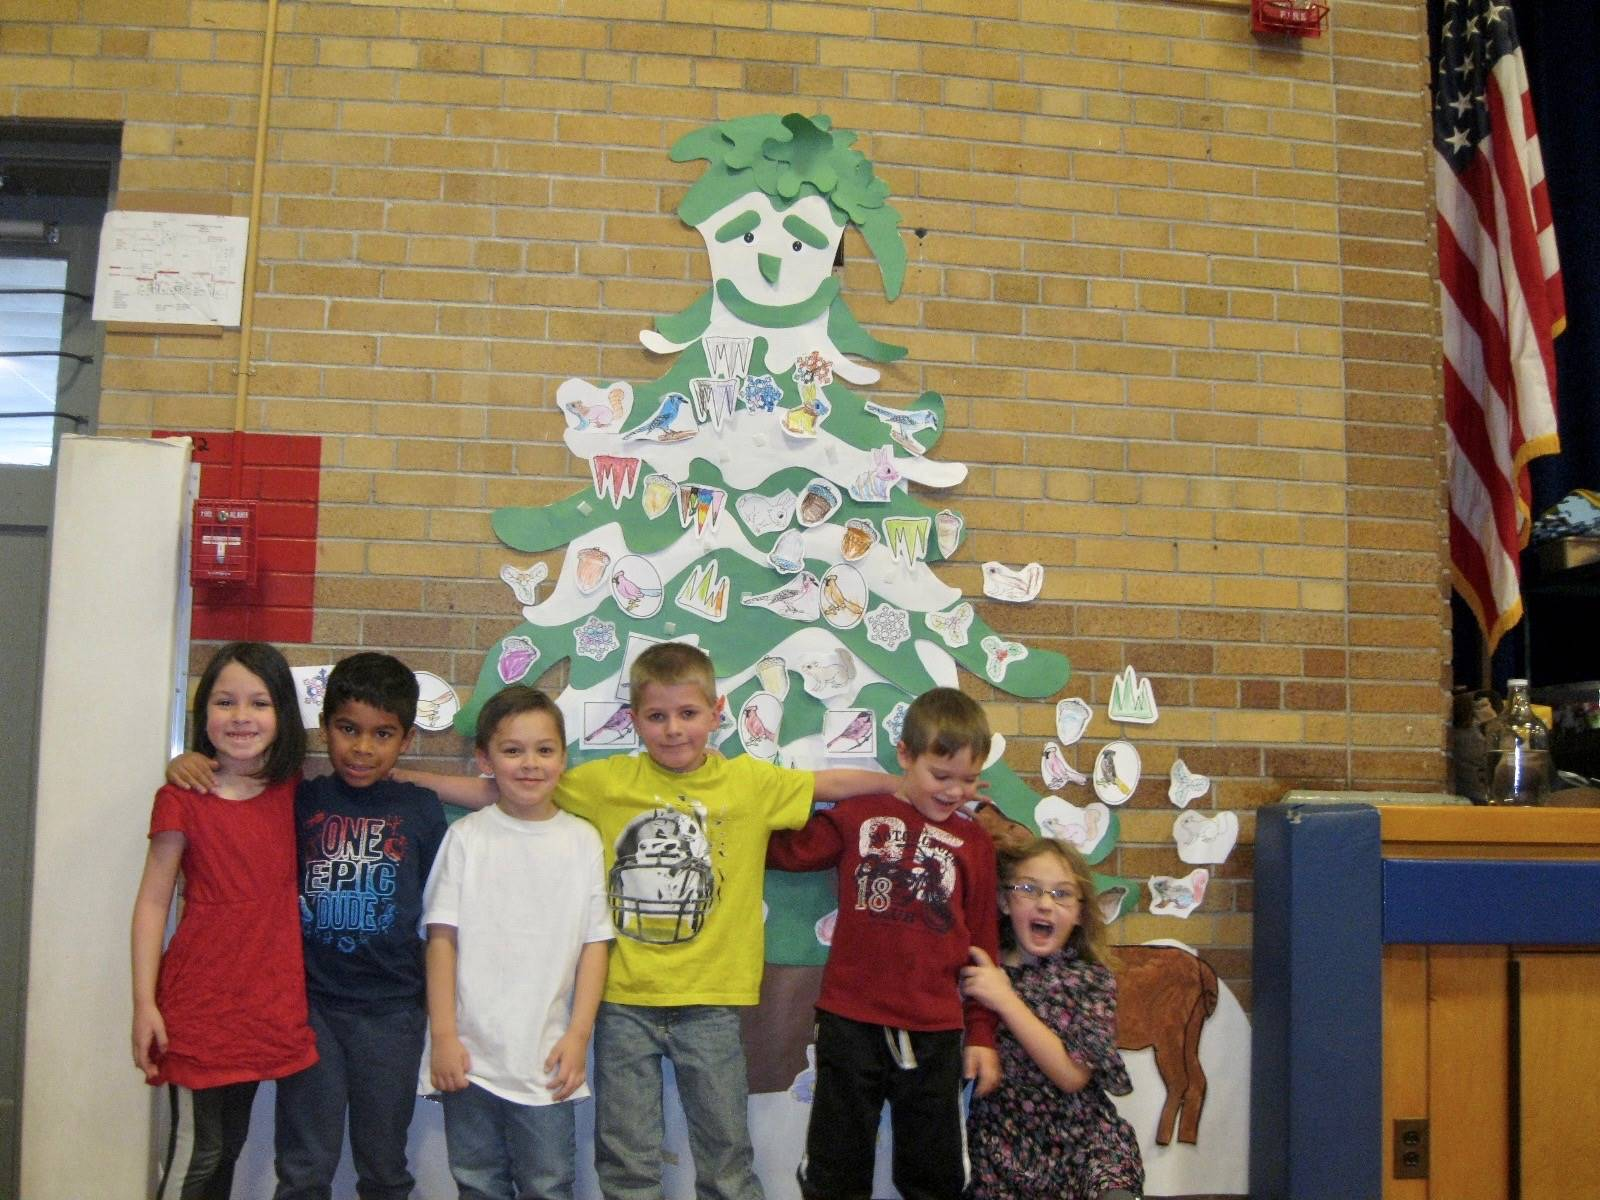 Several students by the friendship tree.